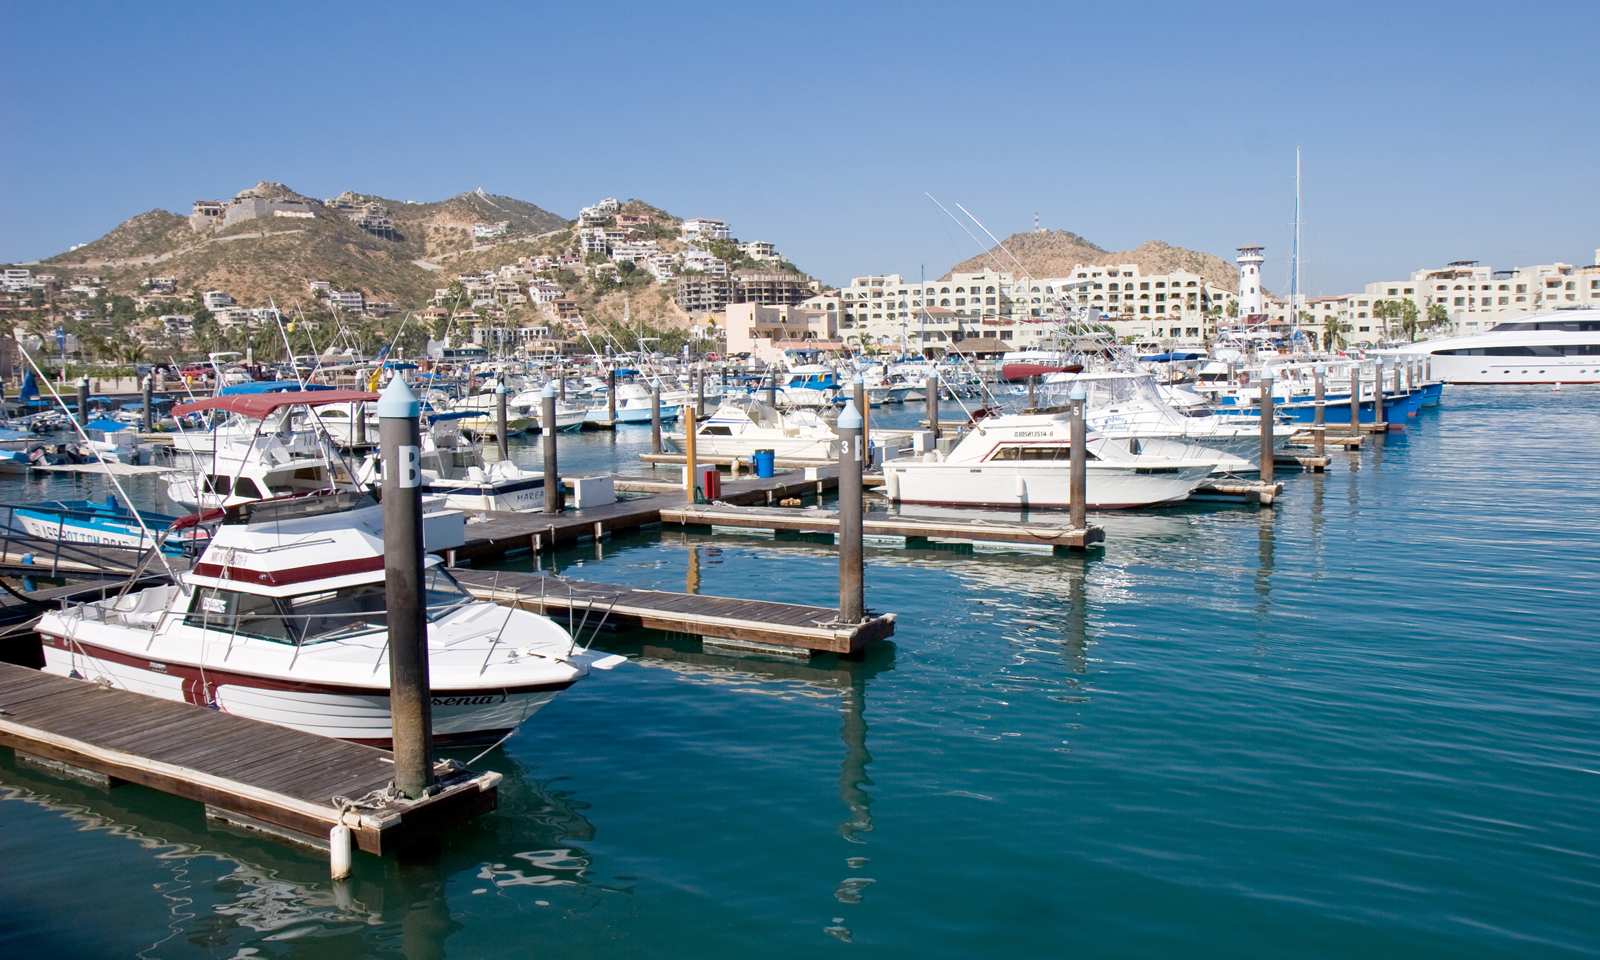 Small harbor, Boats moored in Cabo San Lucas, Mexico